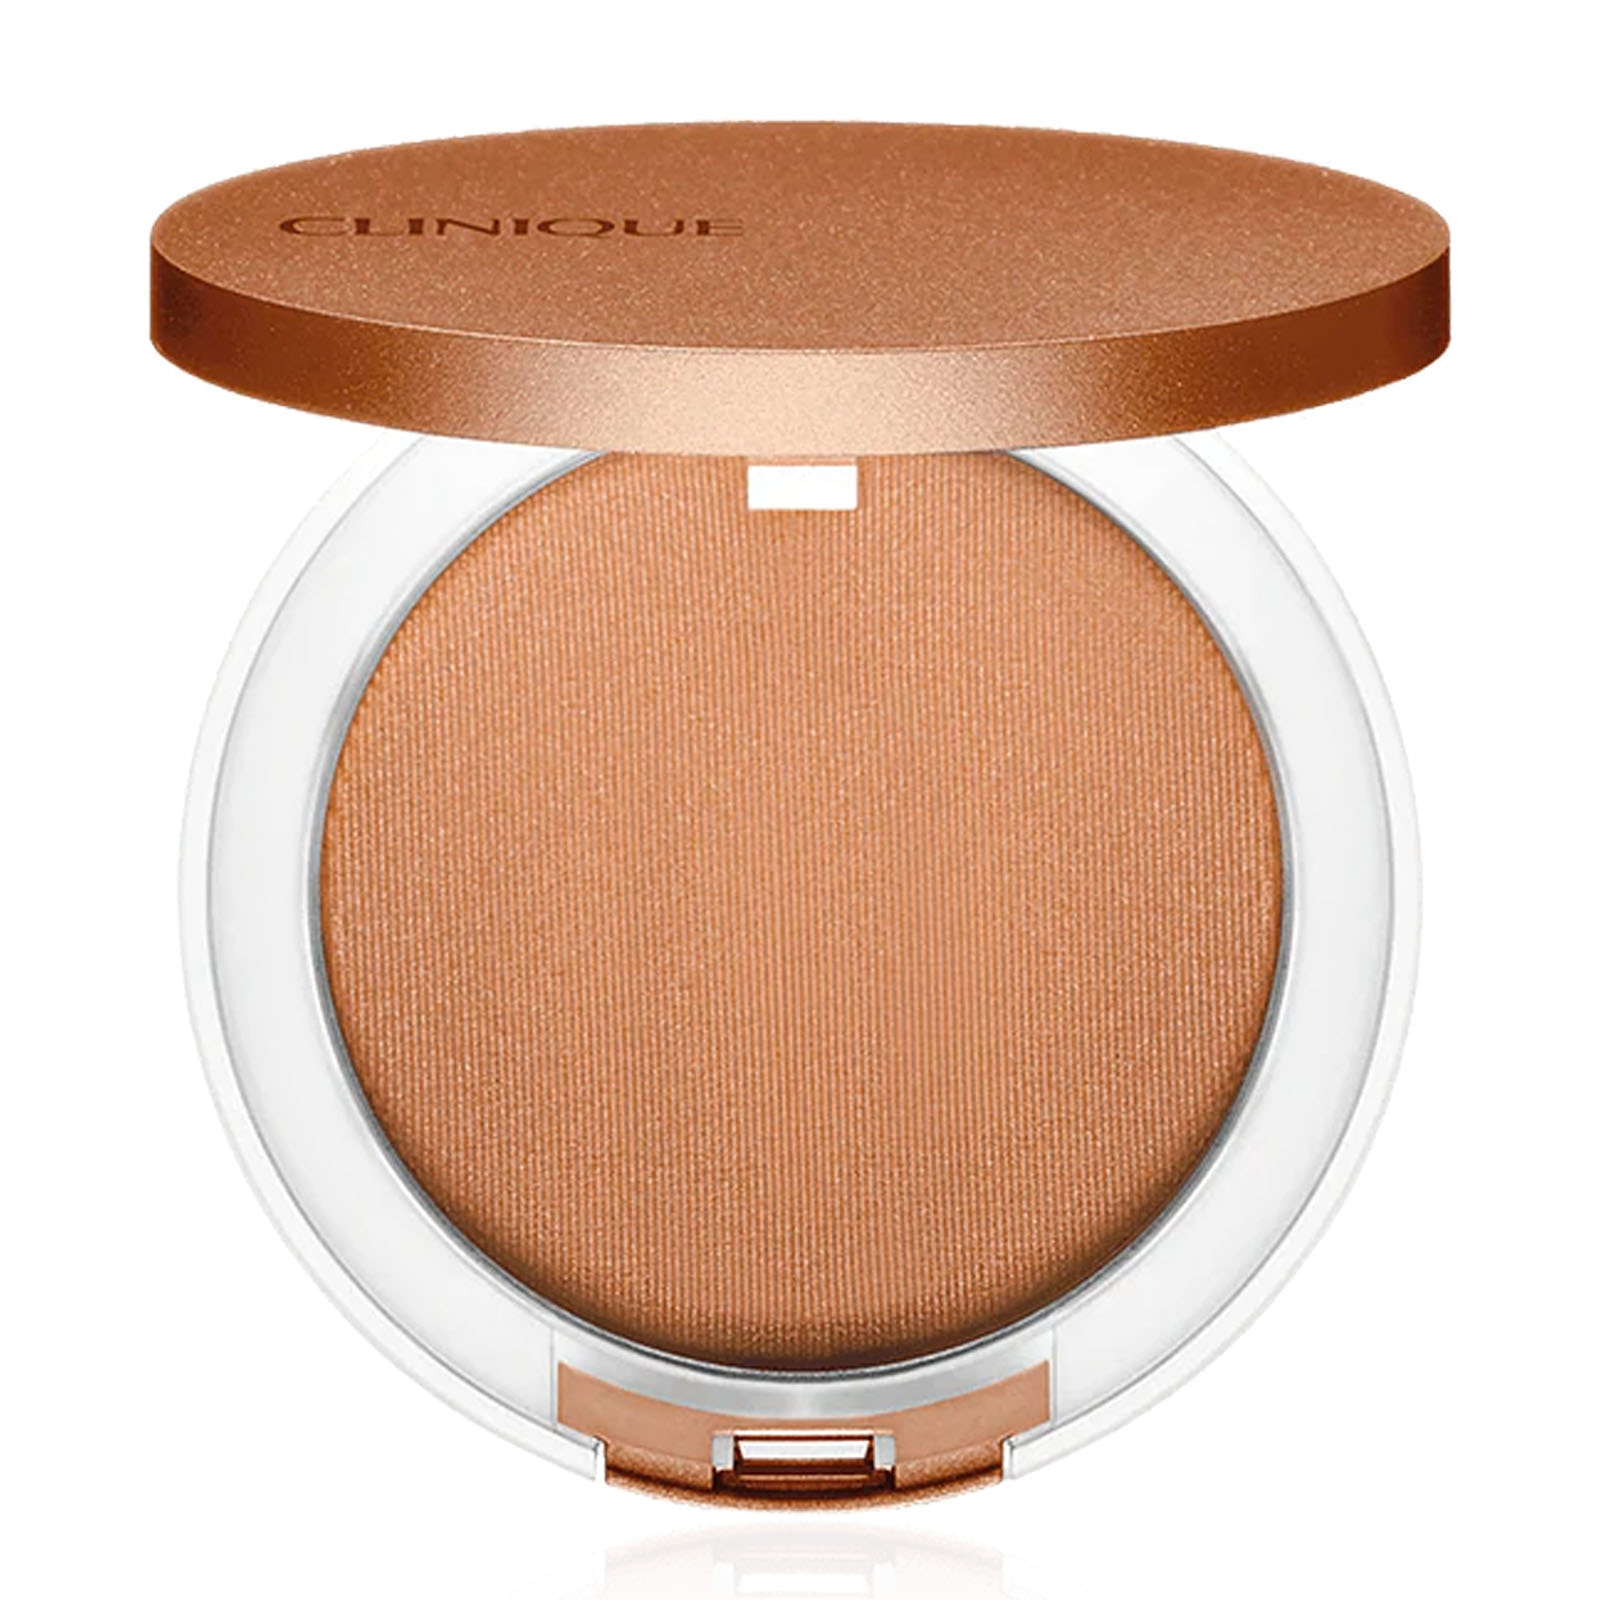 TRUE BRONZE PRESSED POWDER BRONZER (POLVO BRONCEADOR)